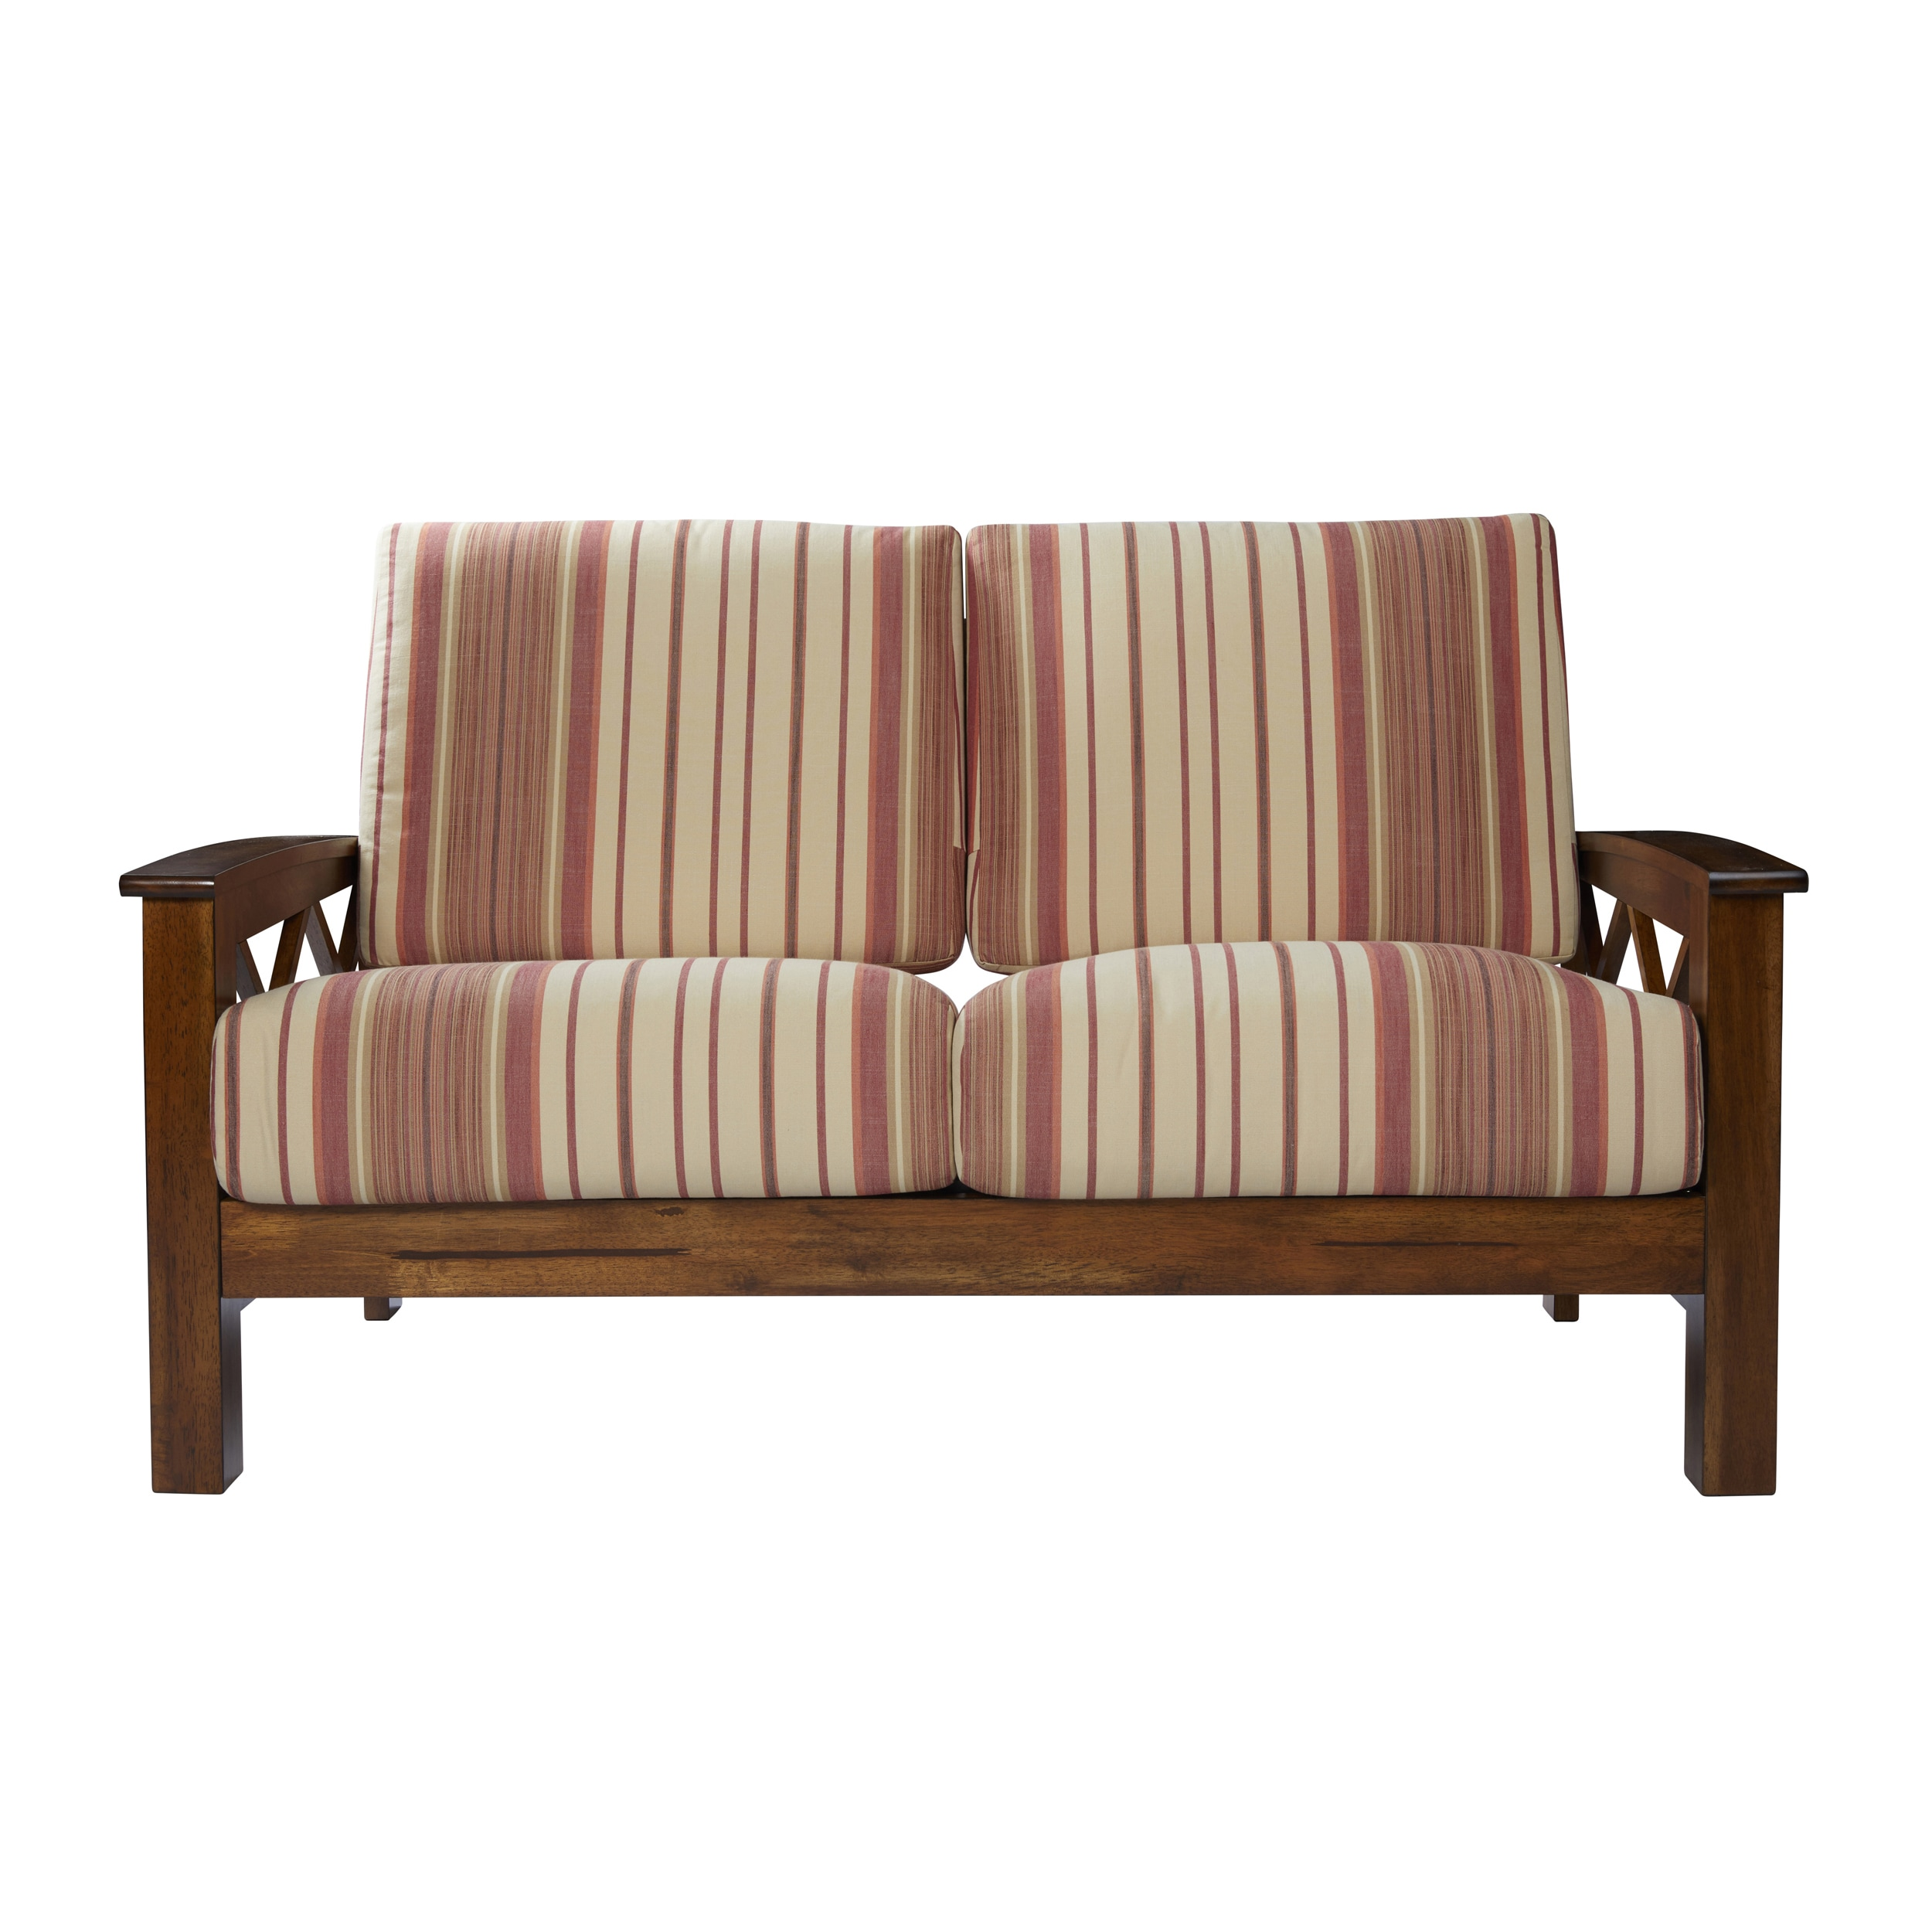 overstock style wood shipping plaid red living free frame product home omaha handy with today garden loveseat exposed mission